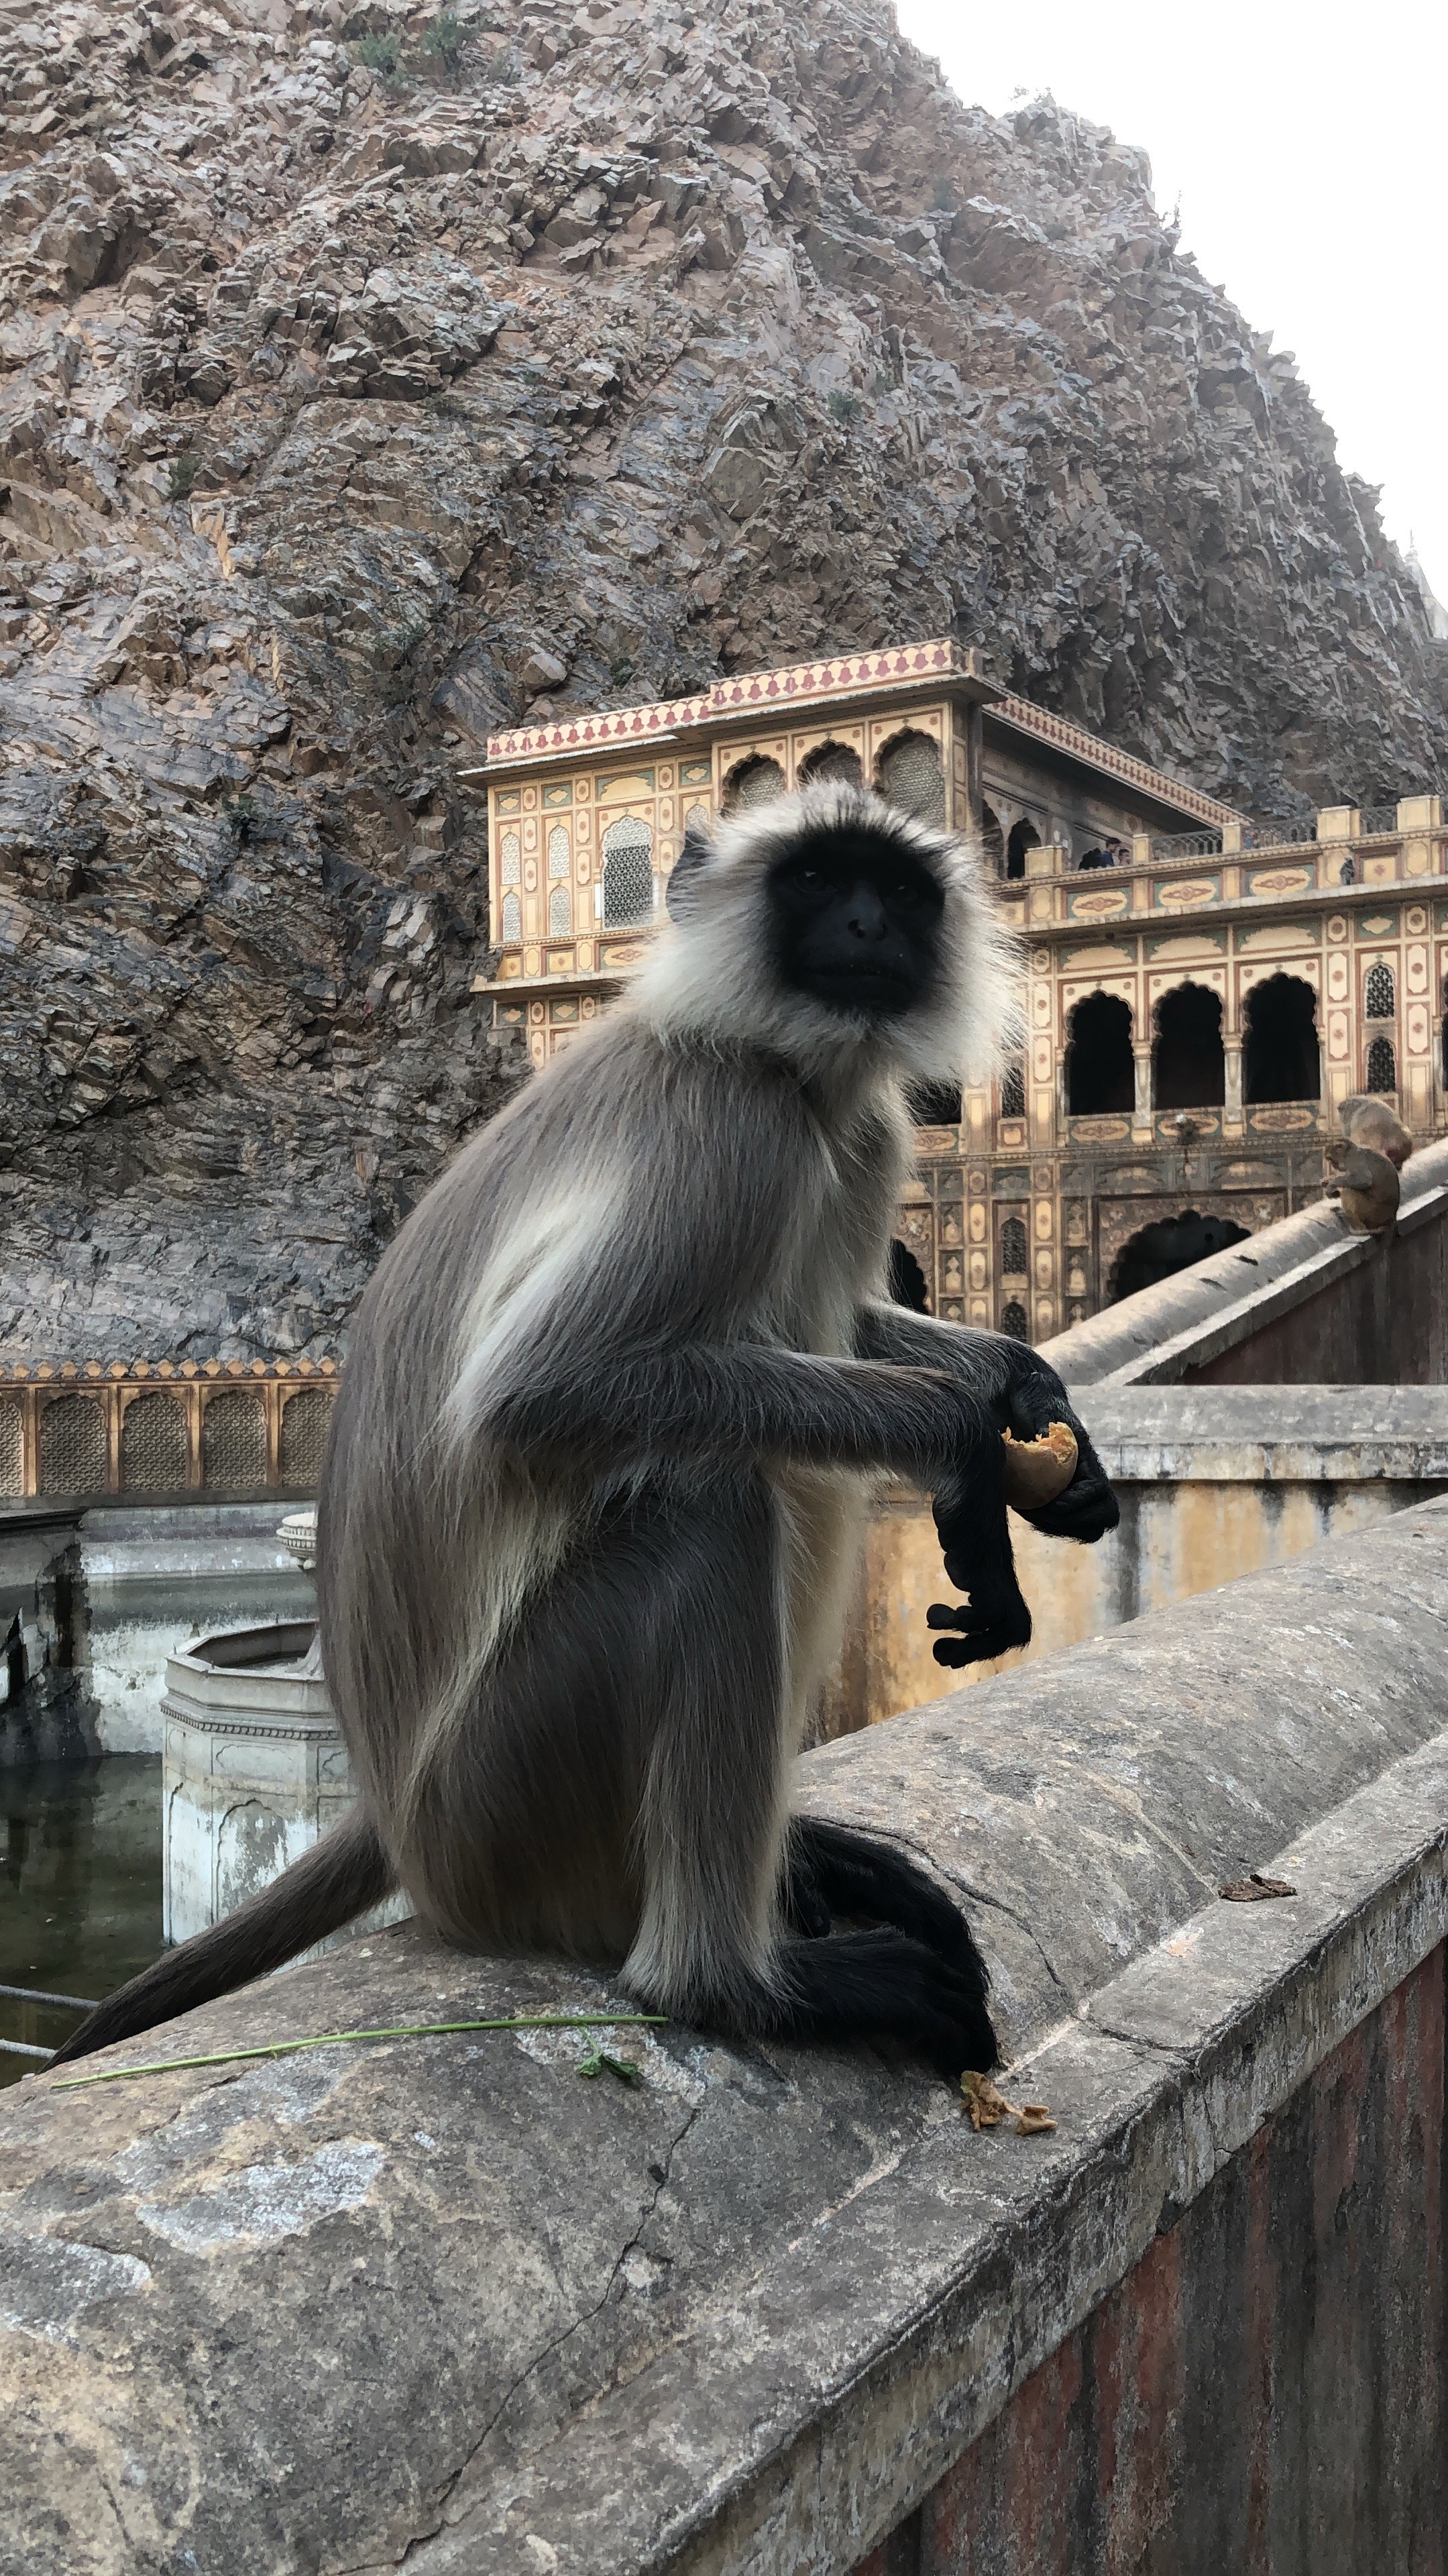 Spotted at Monkey Temple